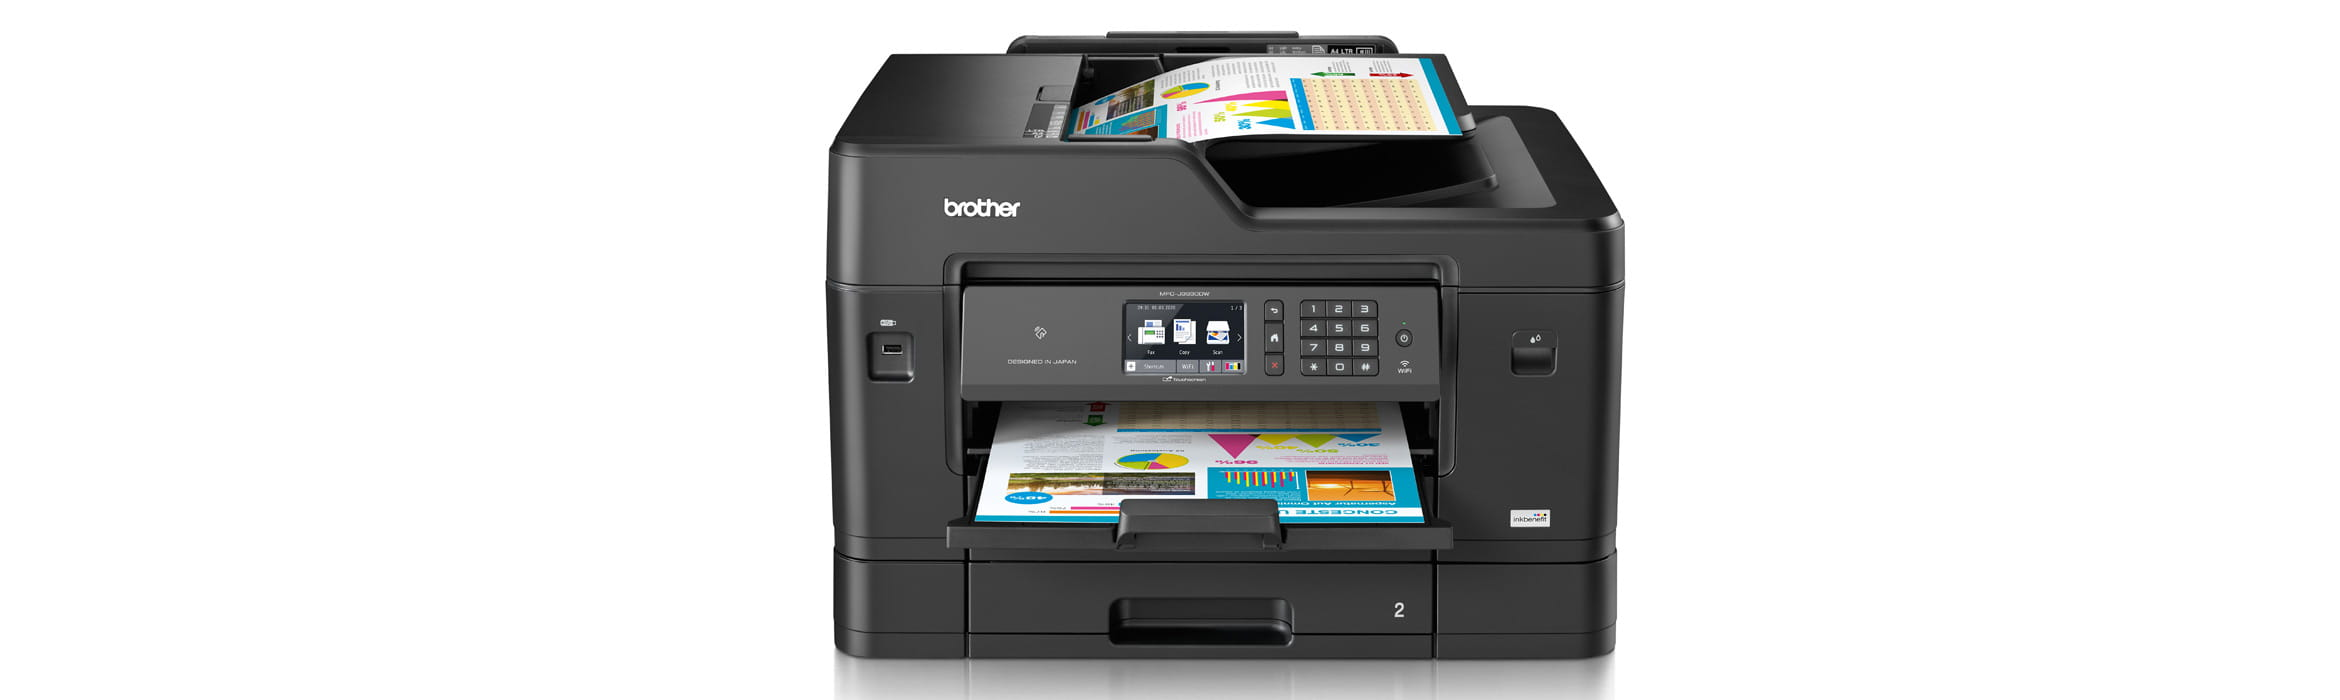 Brother-MFC-J3930DW-printer-only